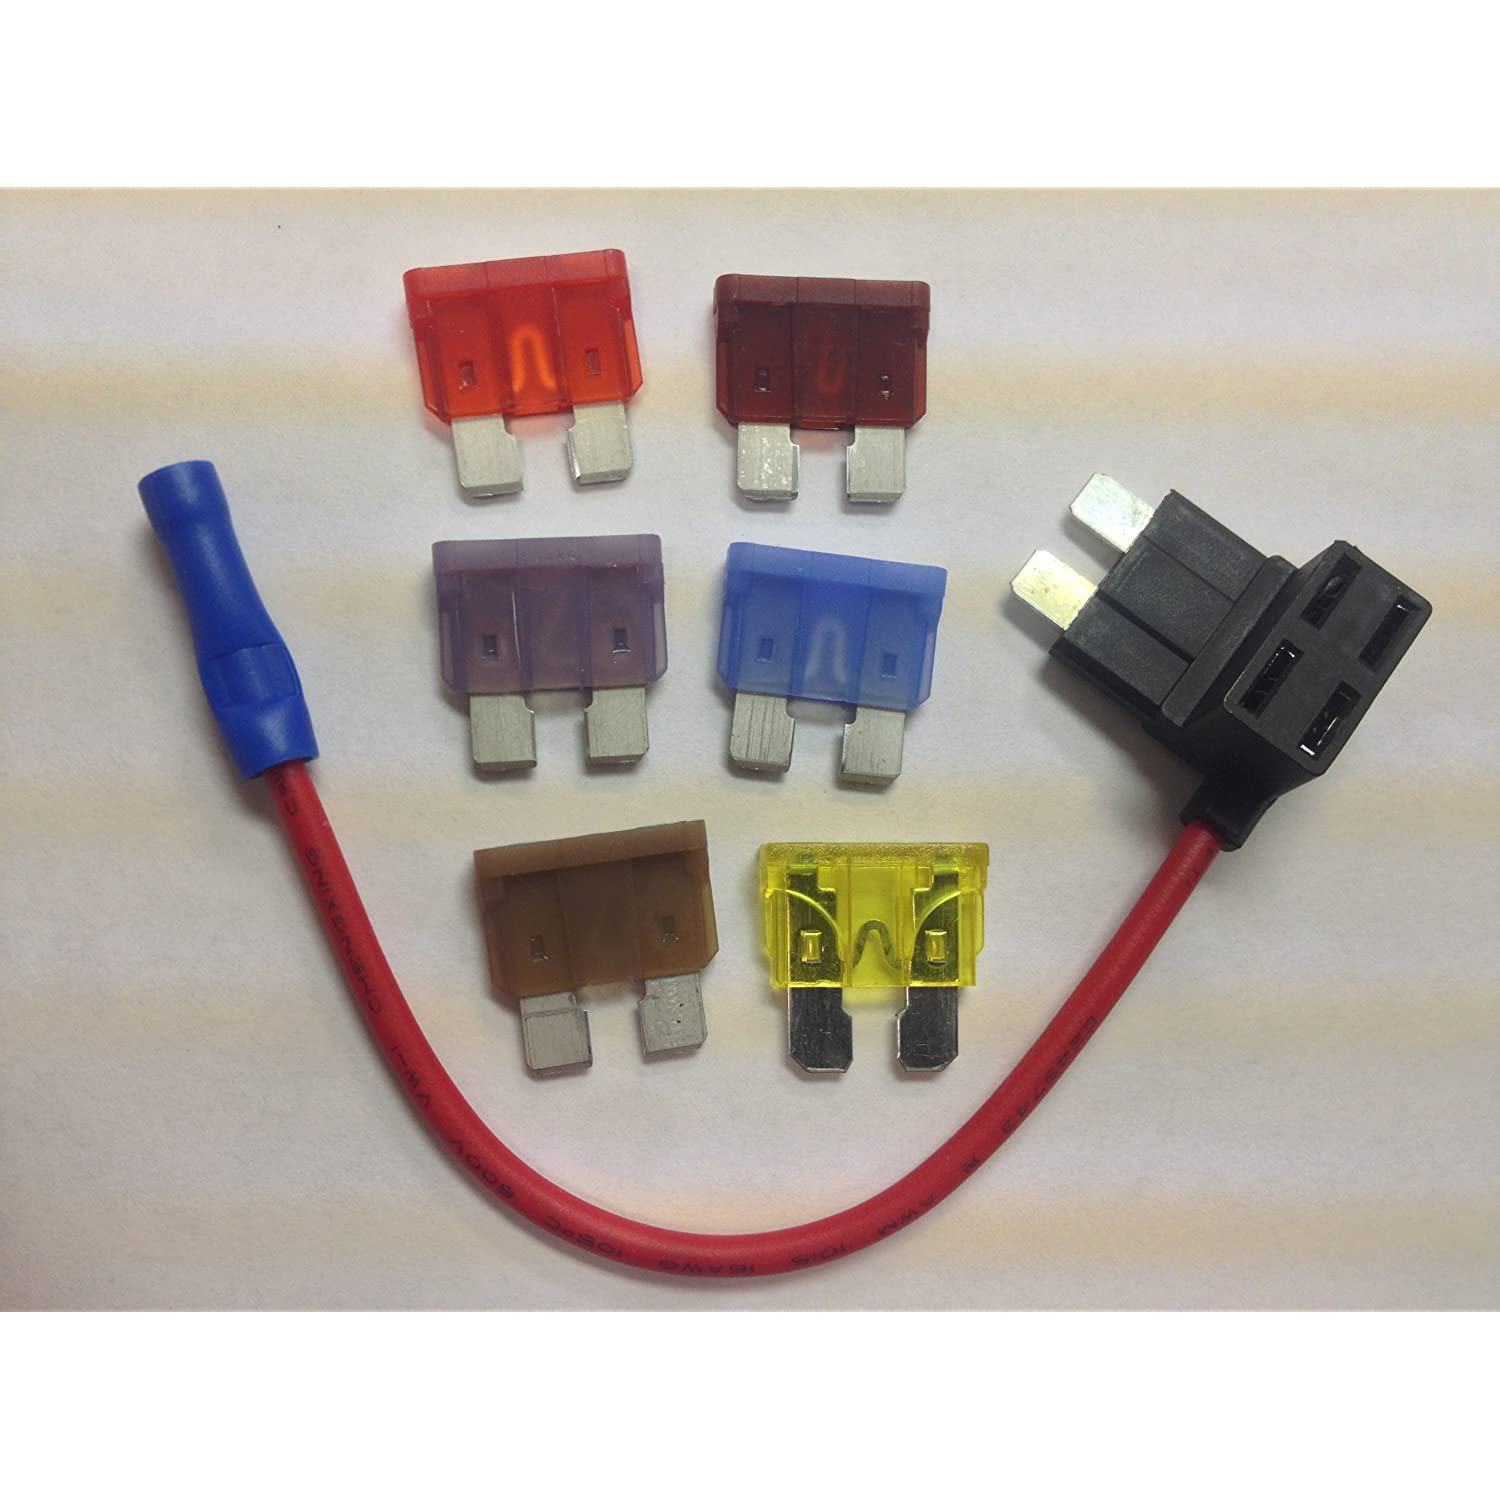 Fuse Box Terminal Adapter All Kind Of Wiring Diagrams Tap Ato Atc 6 Fuses Add On Dual Circuit Auto Car Ebay To Relay Jd 5603